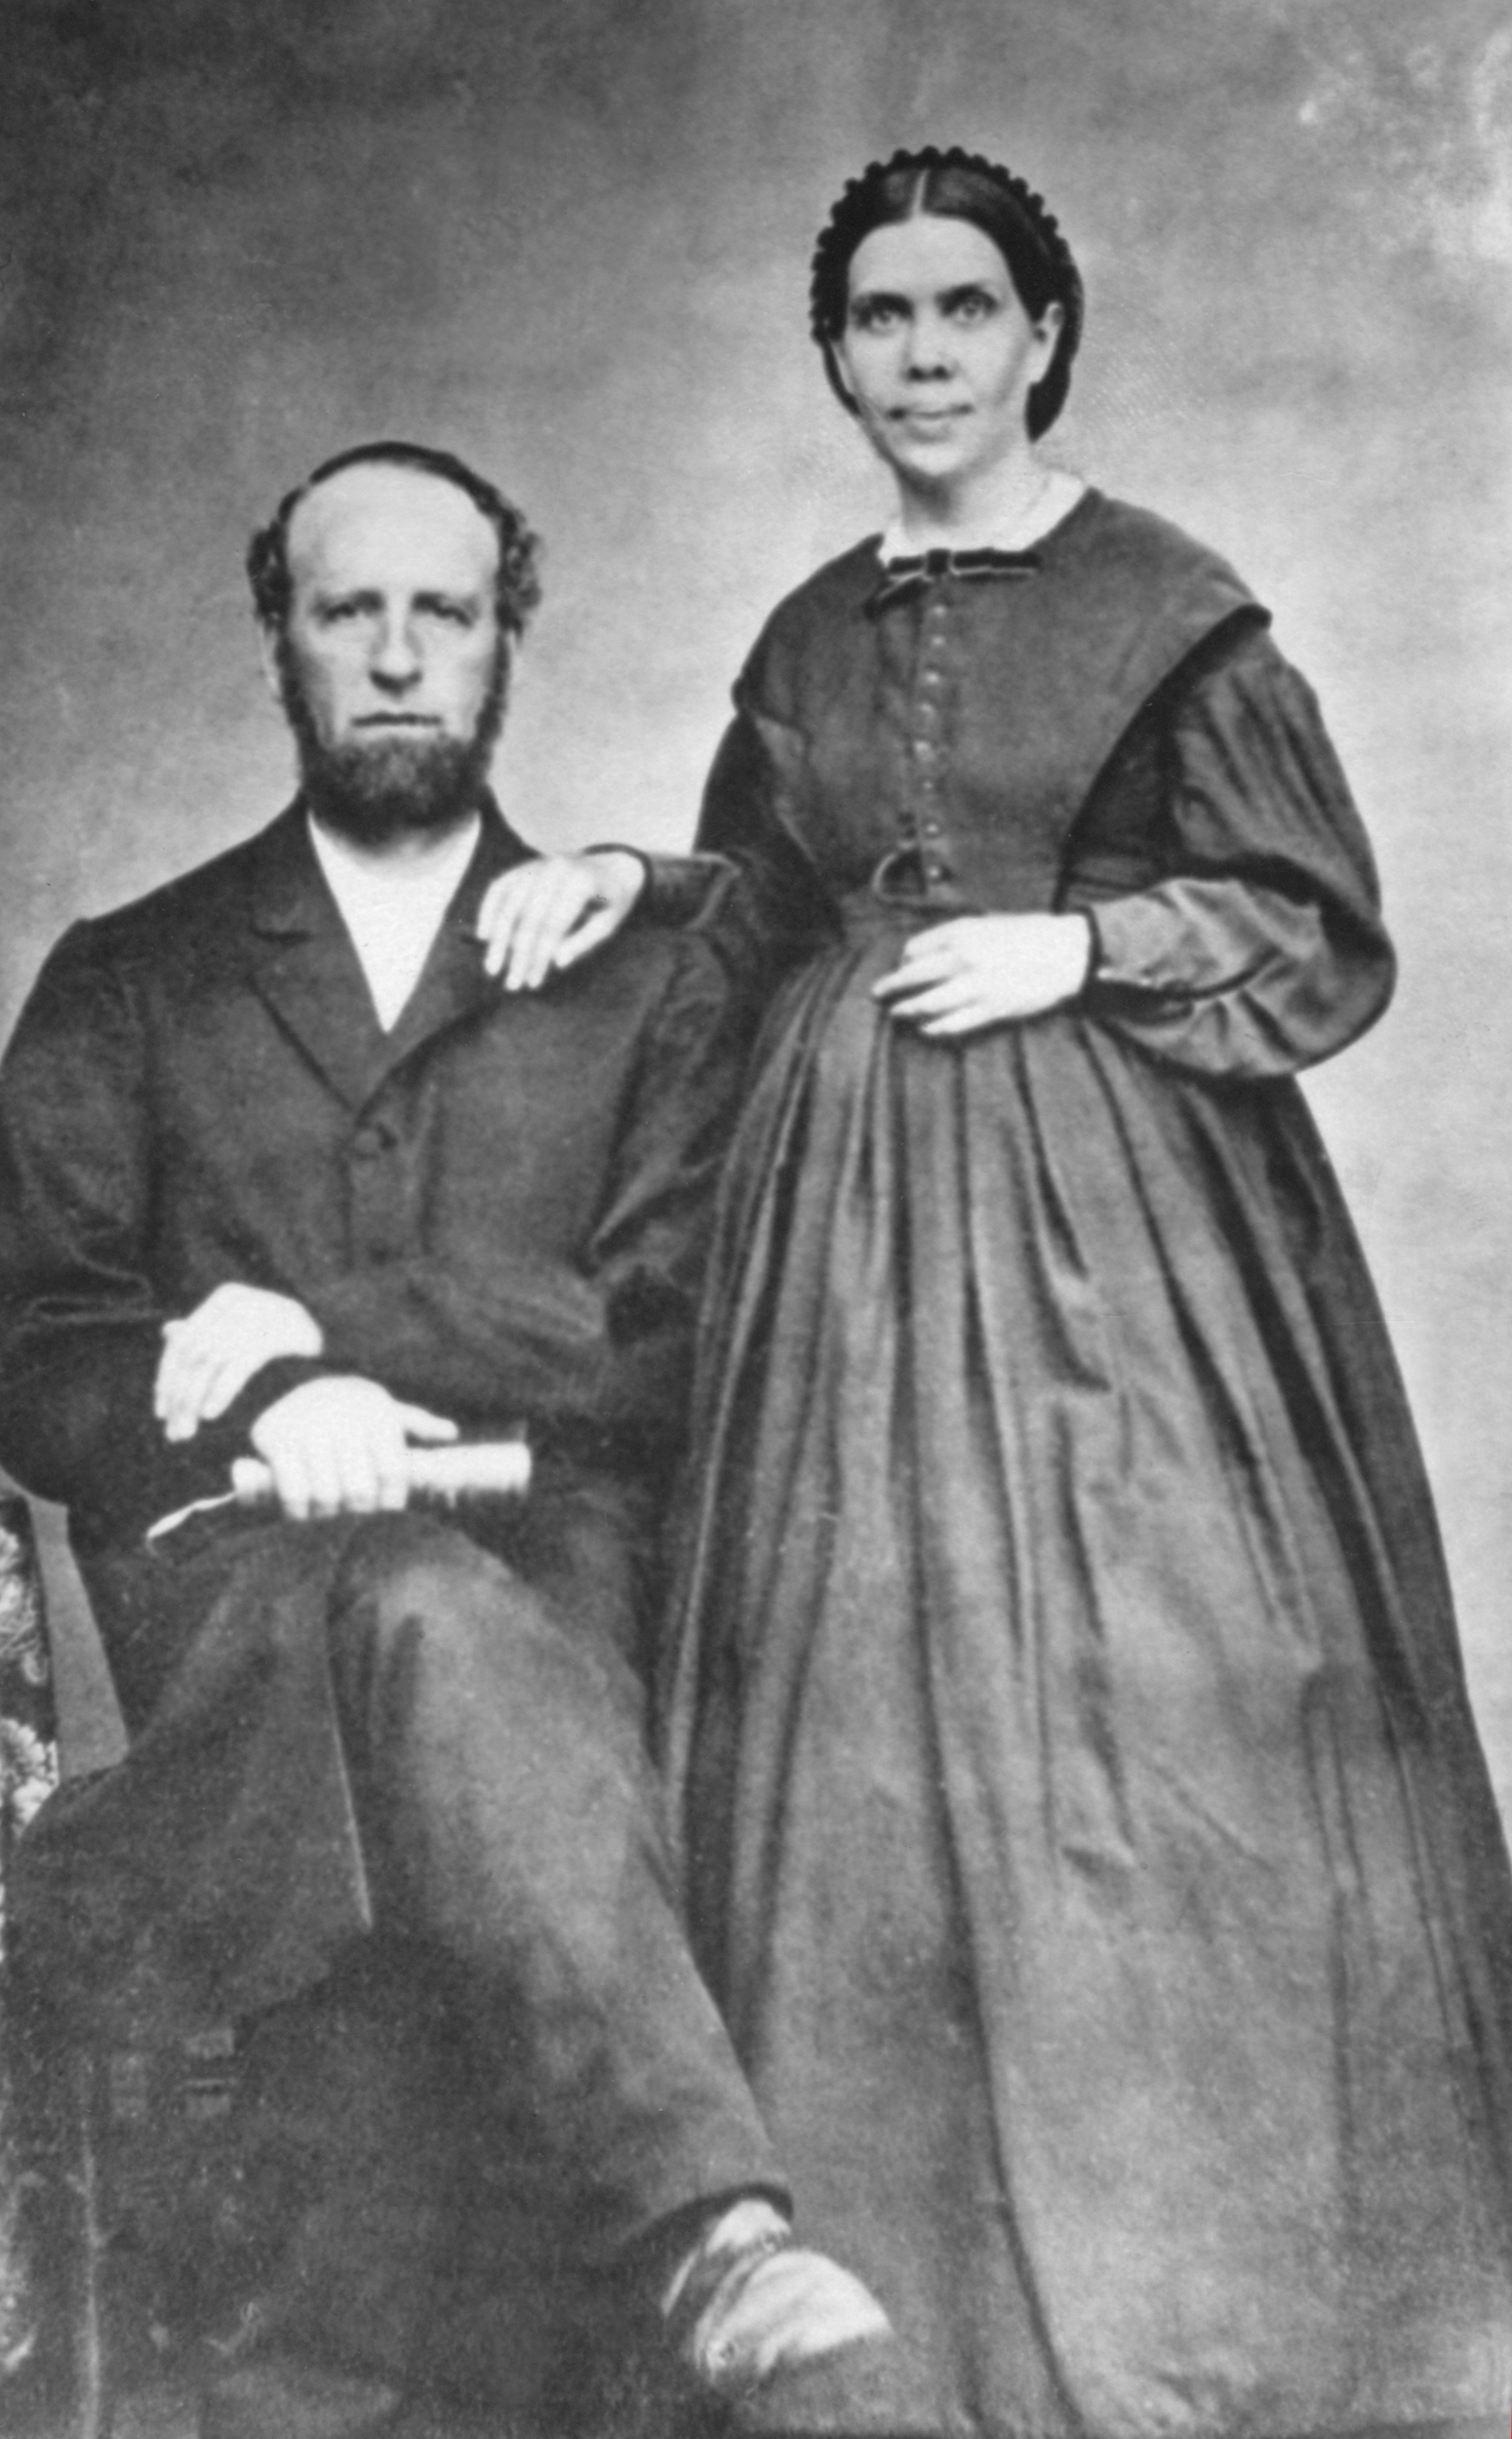 http://upload.wikimedia.org/wikipedia/commons/7/75/James_and_Ellen_White.jpg